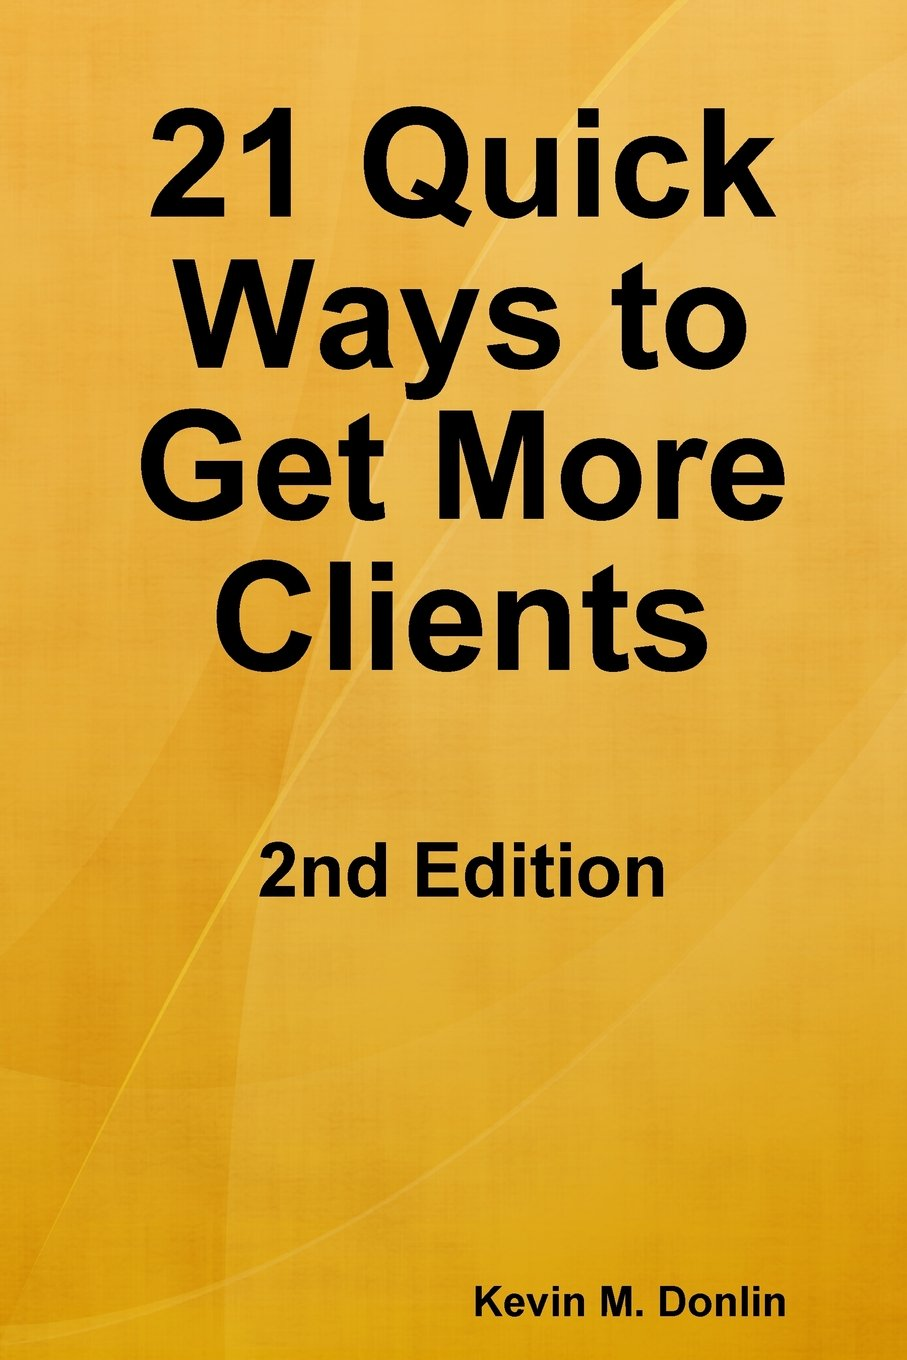 21 Quick Ways to Get More Clients: 2nd Edition